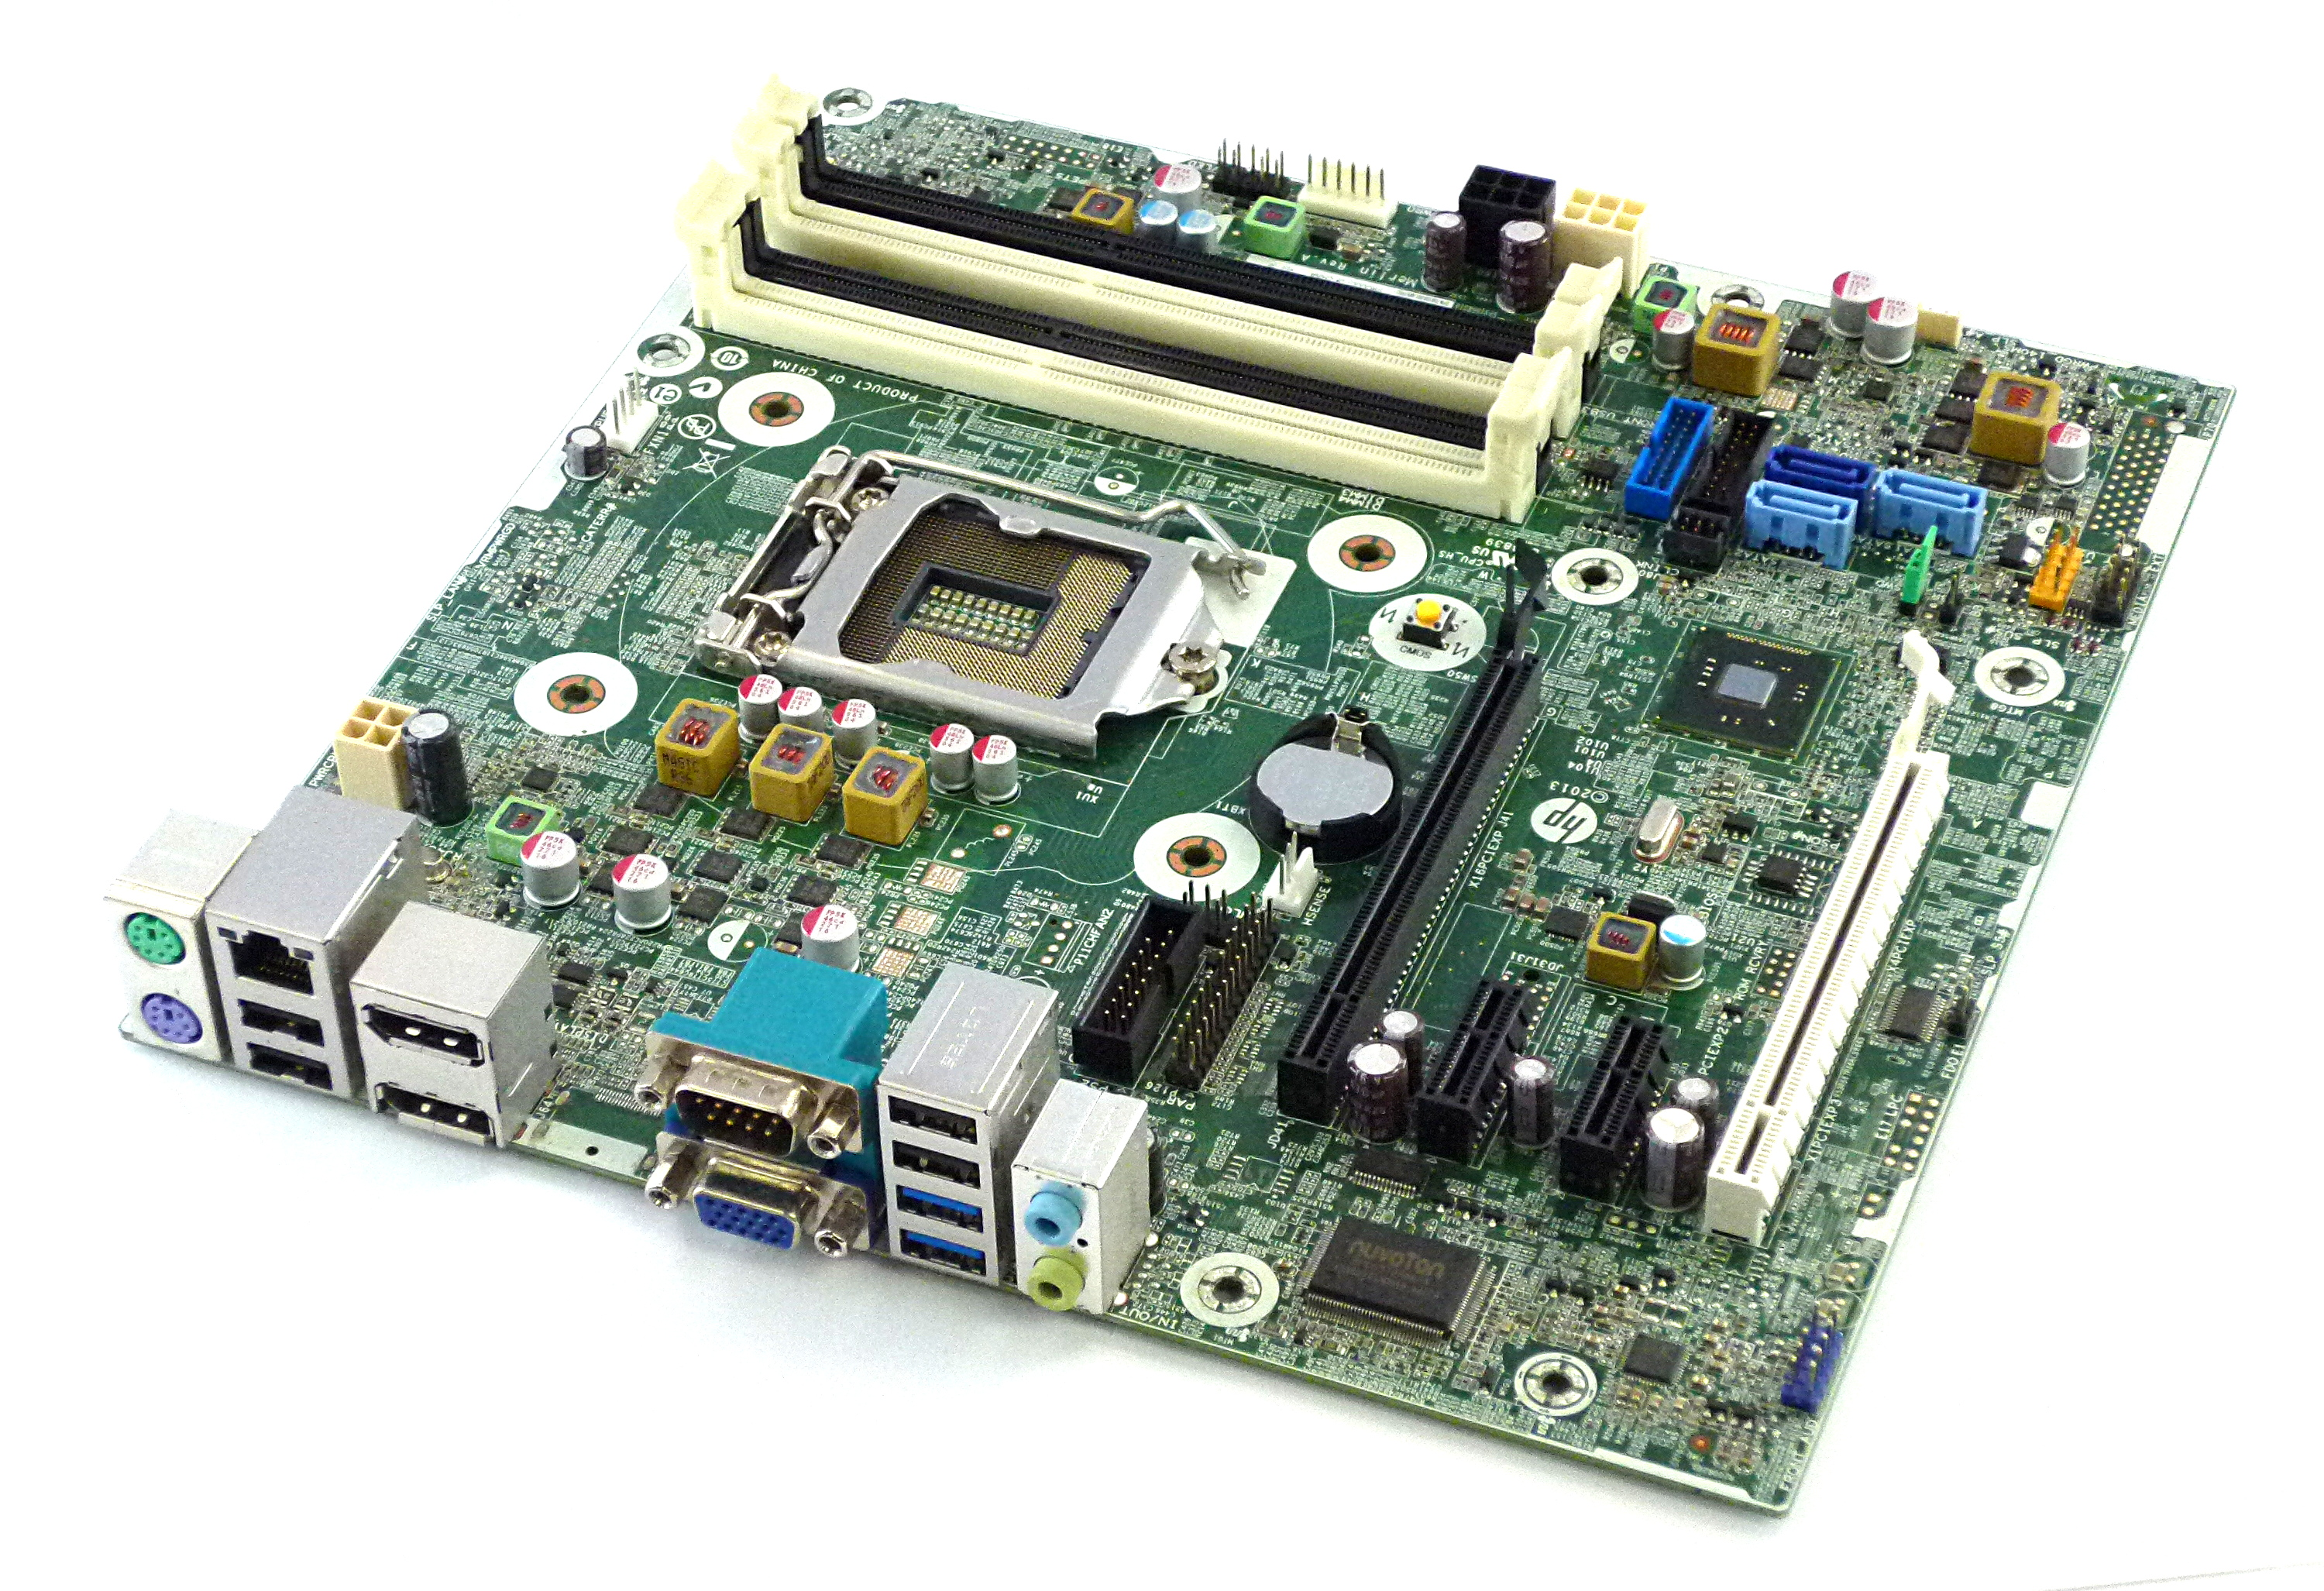 HP 717372-003 Socket LGA1150 Motherboard For EliteDesk 800 G1 Desktop PC